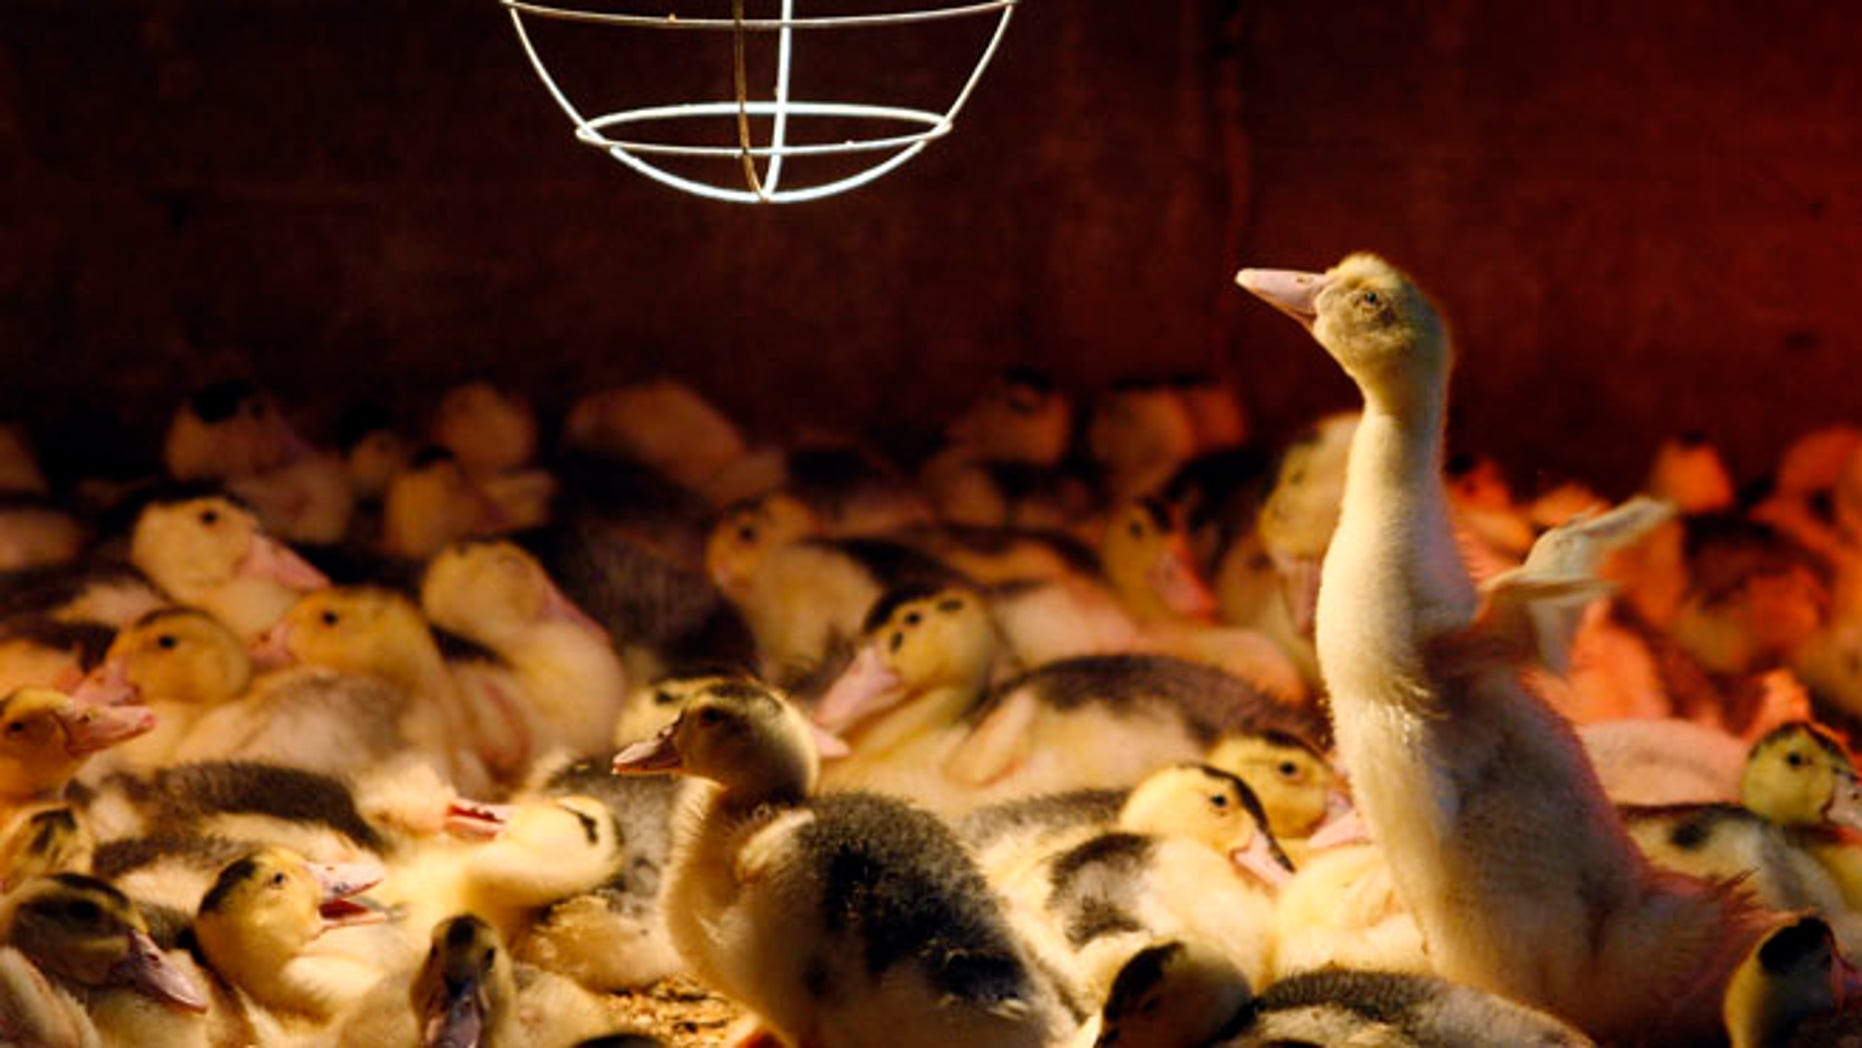 June 6, 2009: A three week old Mulard duck tries to fly inside a barn at the Ferme Basque in St-Urbain.